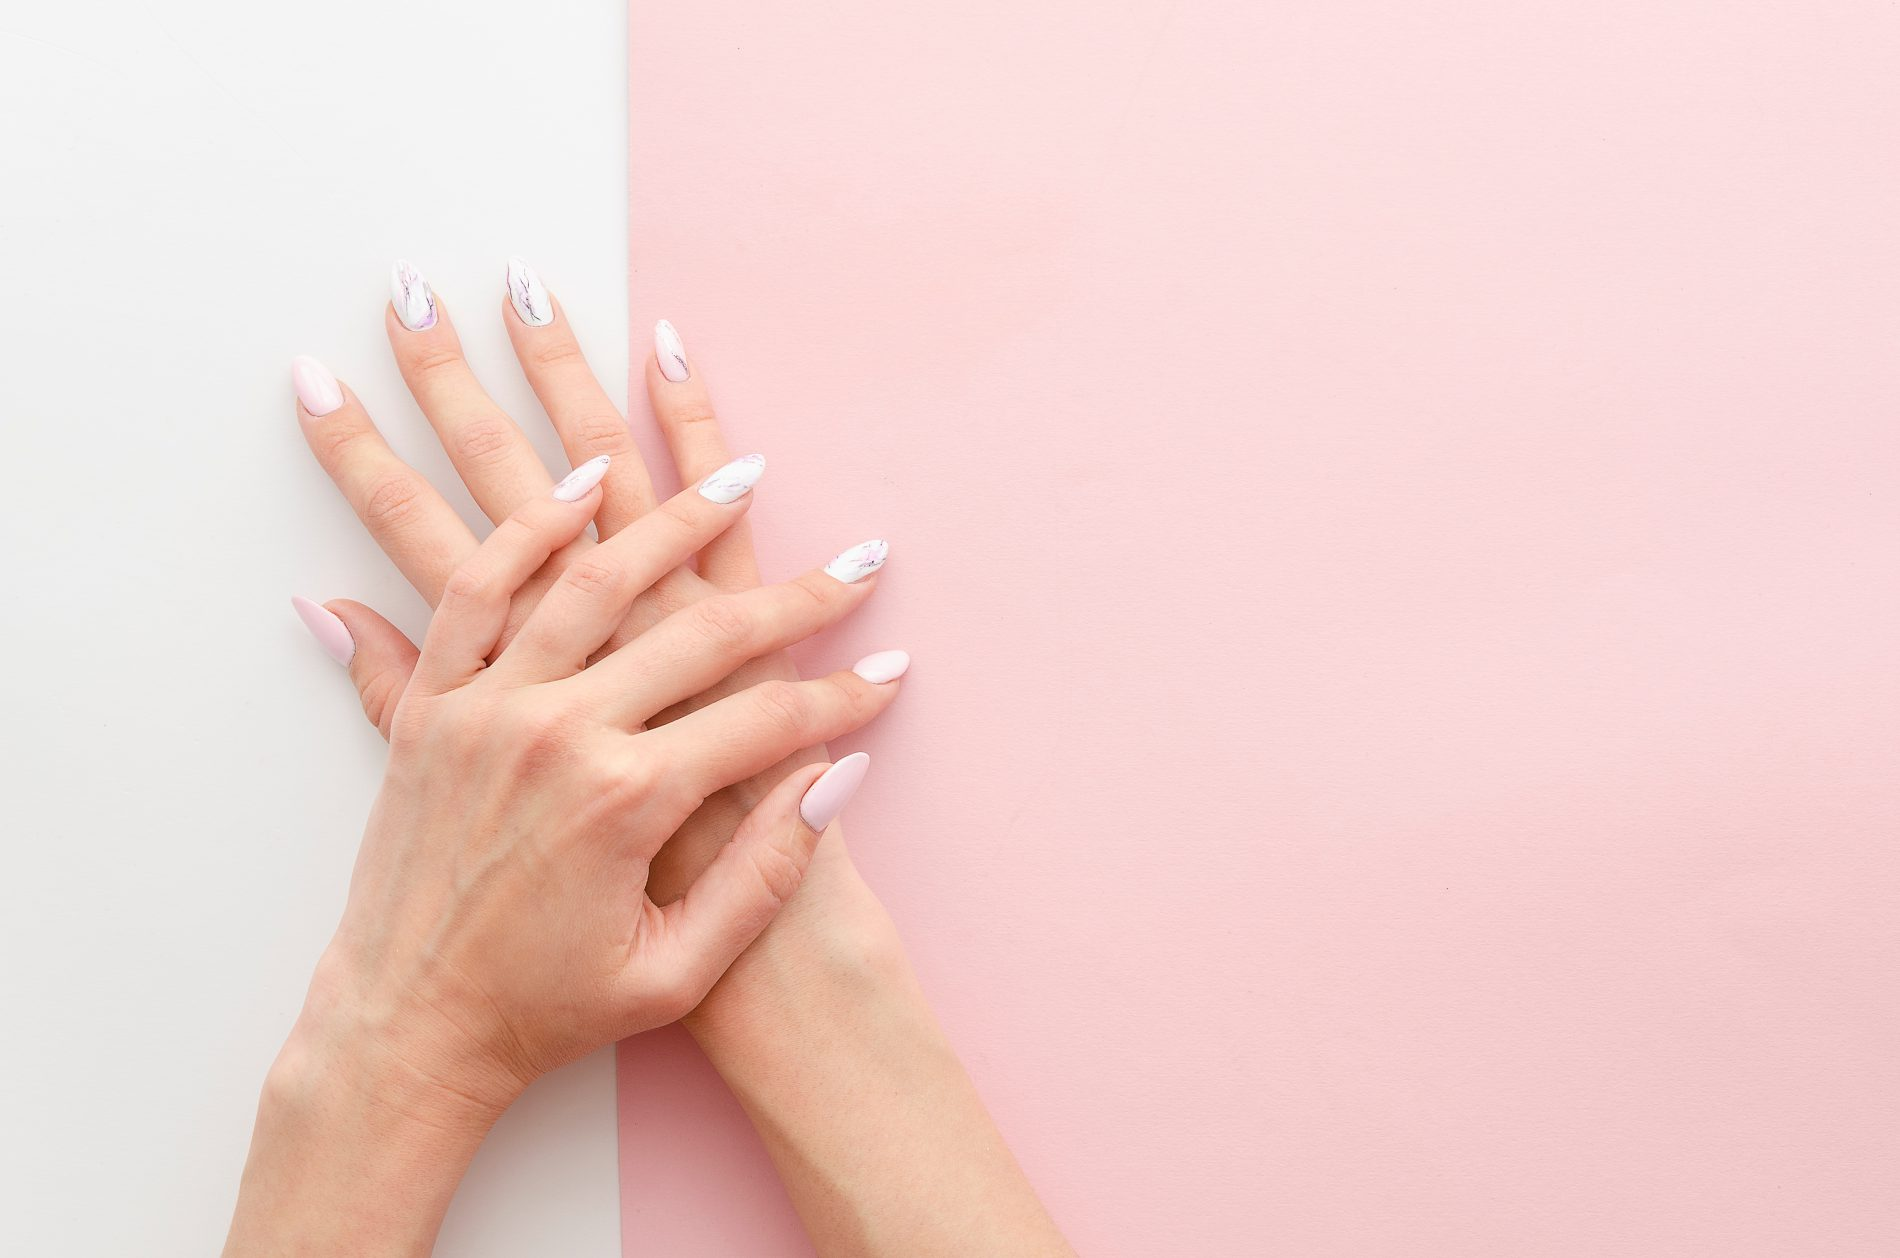 delicate hands with french manicure acrylic nails